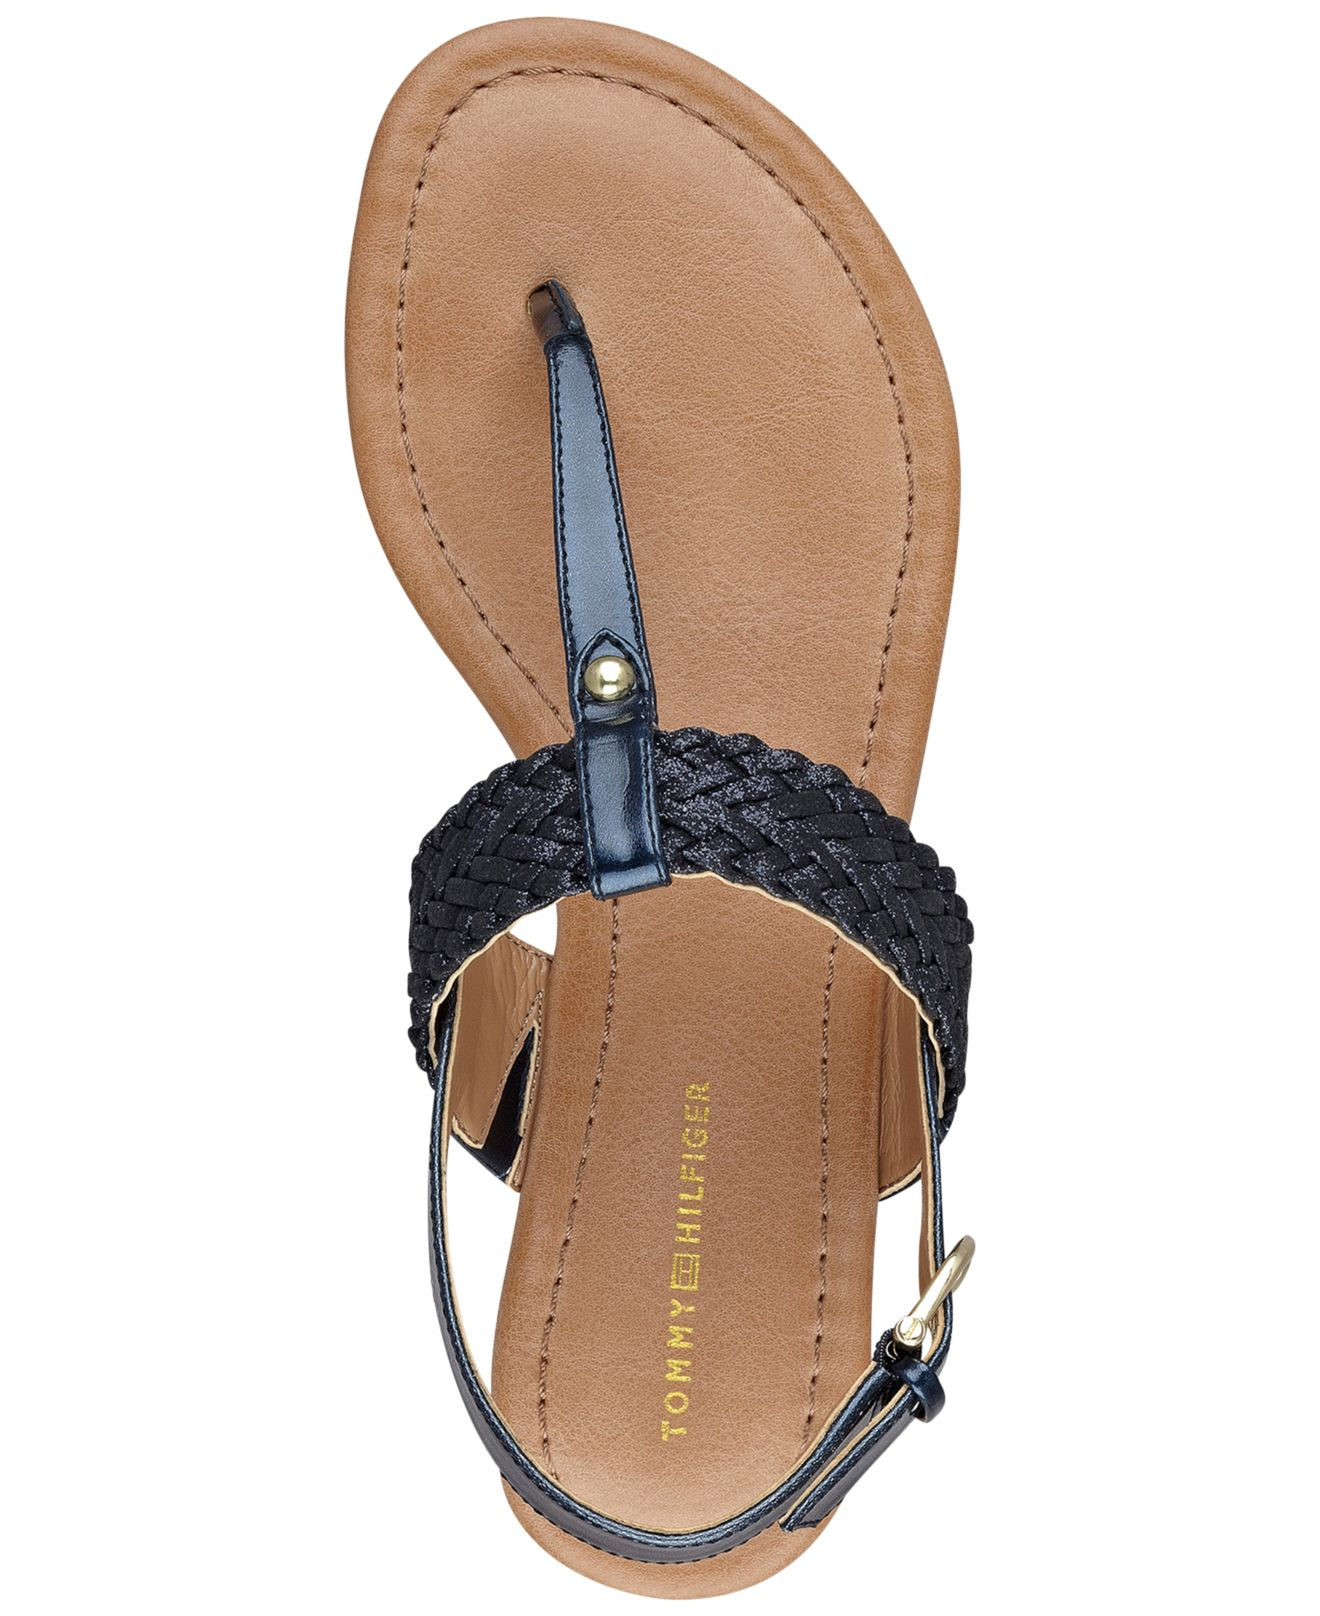 Lyst - Tommy Hilfiger Women'S Saycn Flat Thong Sandals in Blue